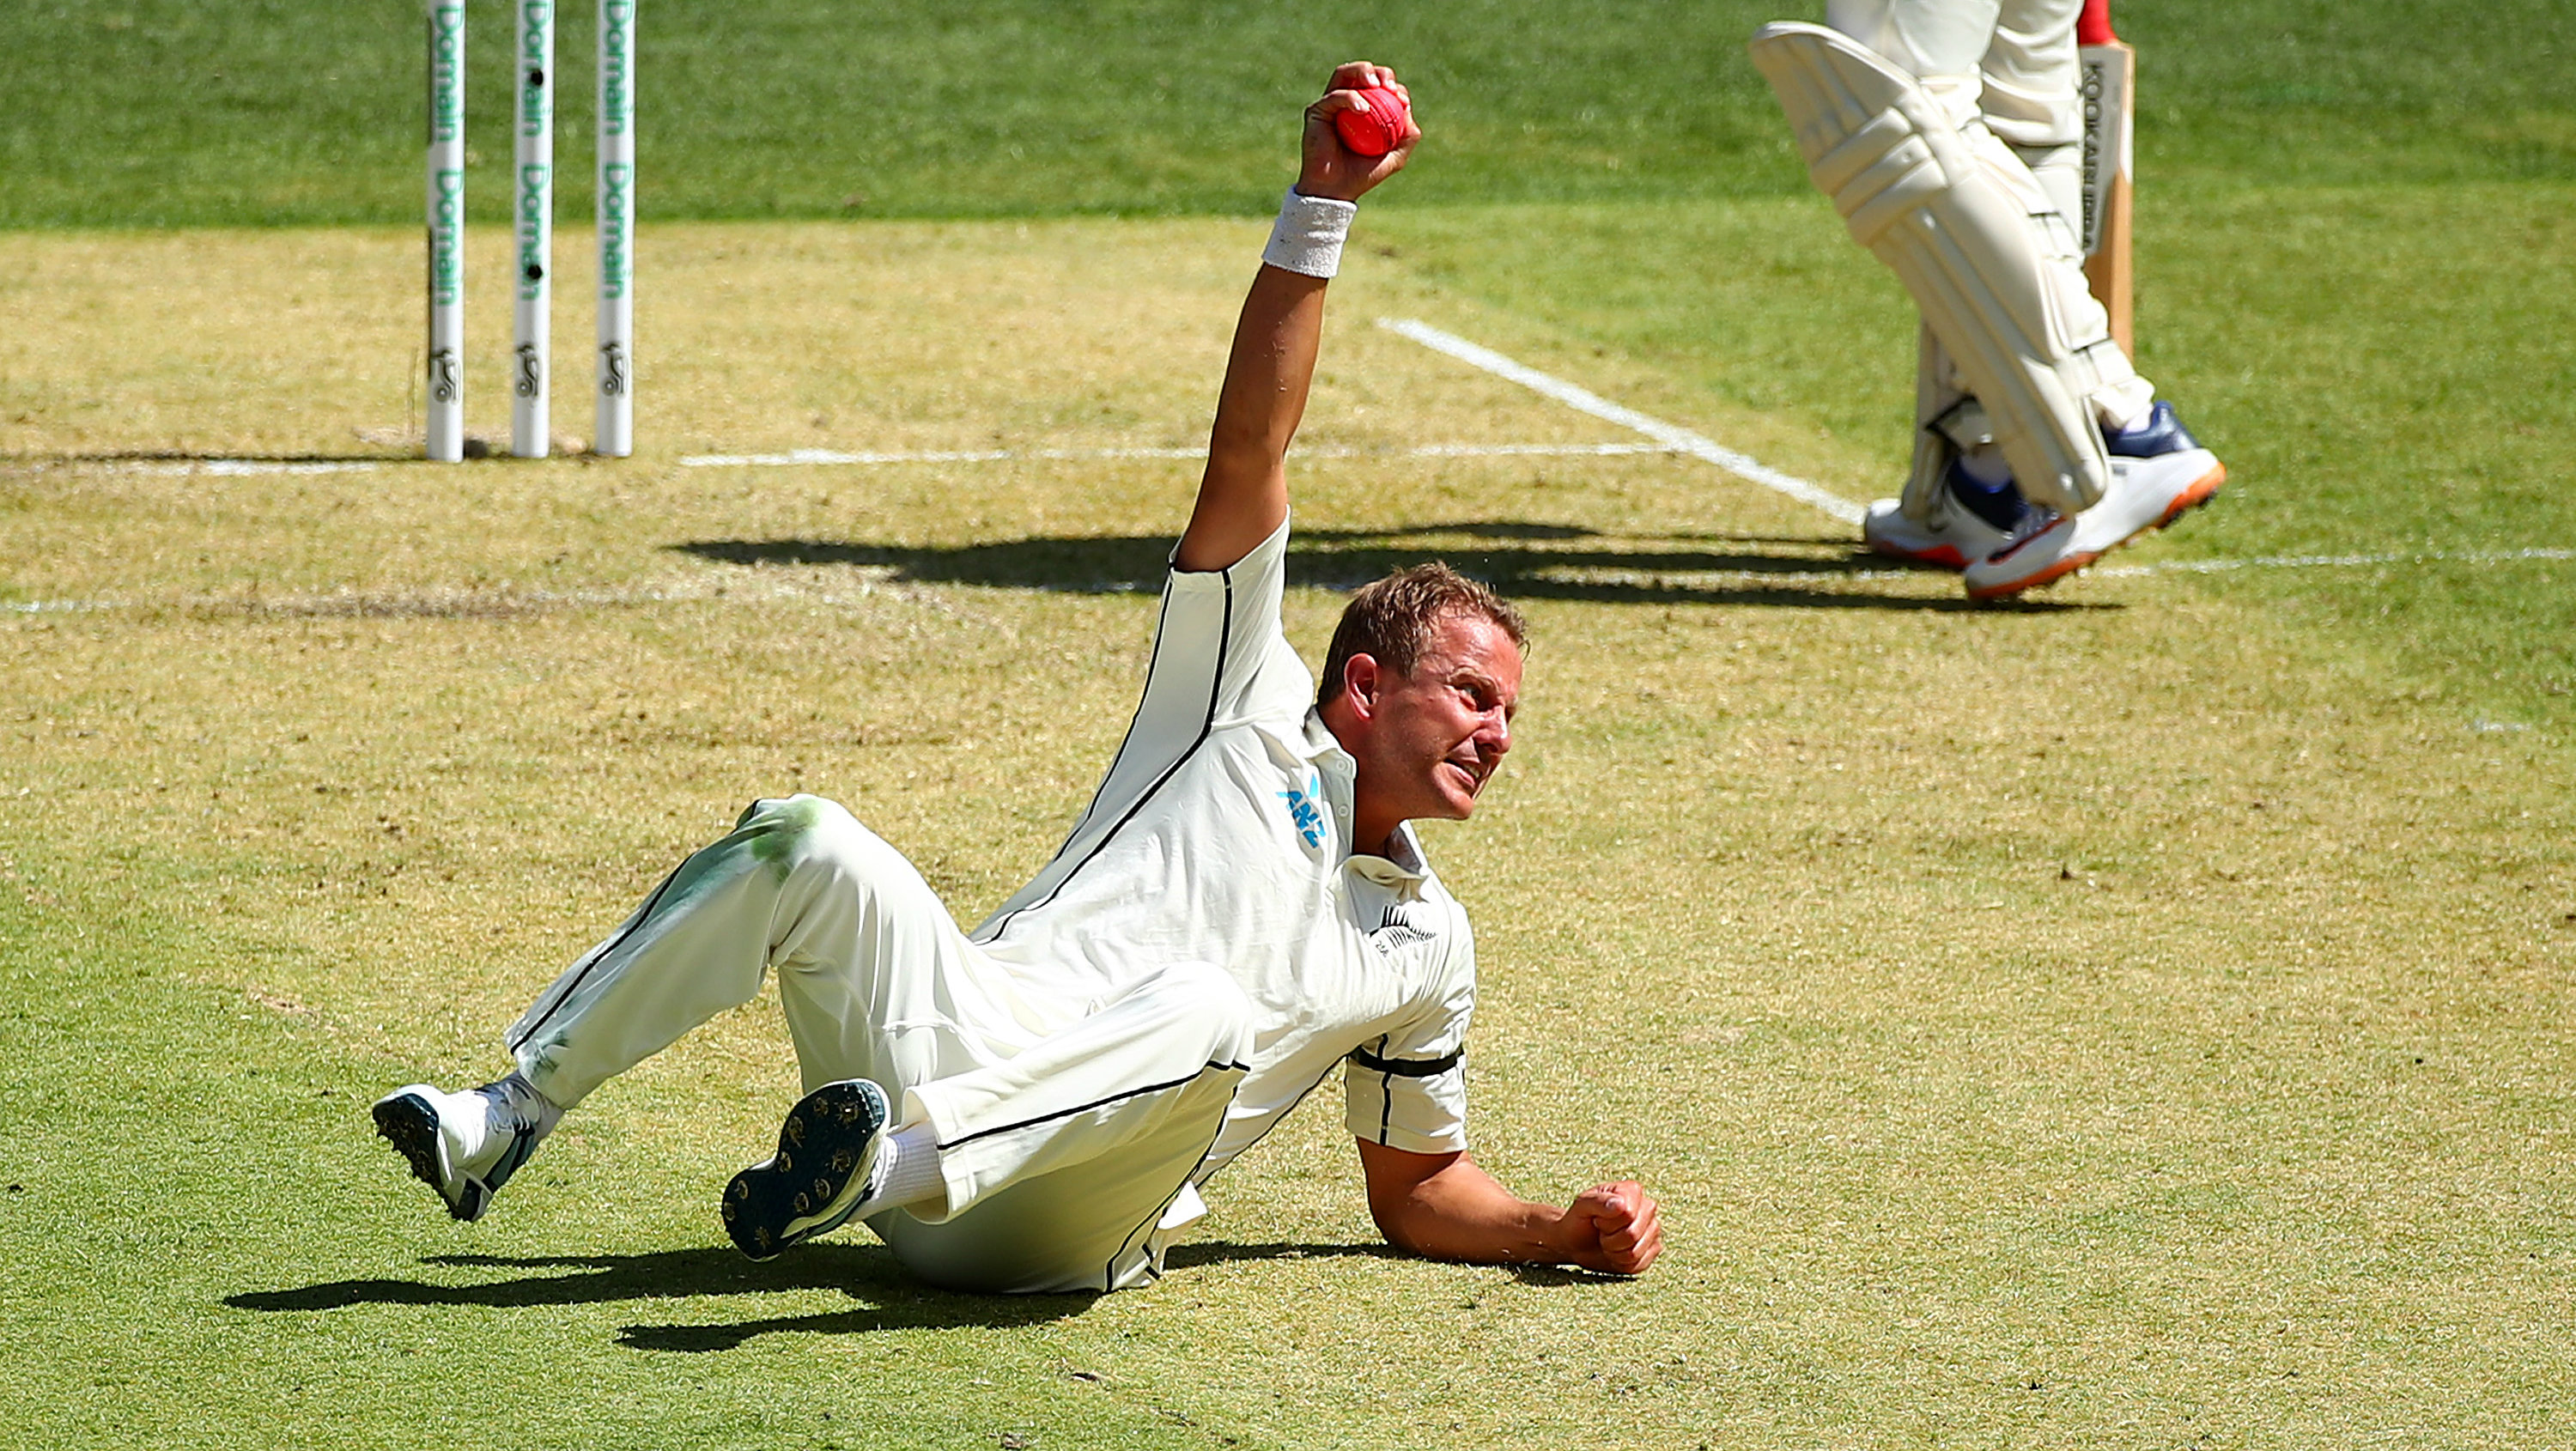 Australia v New Zealand: Neil Wagner takes incredible catch to dismiss David Warner